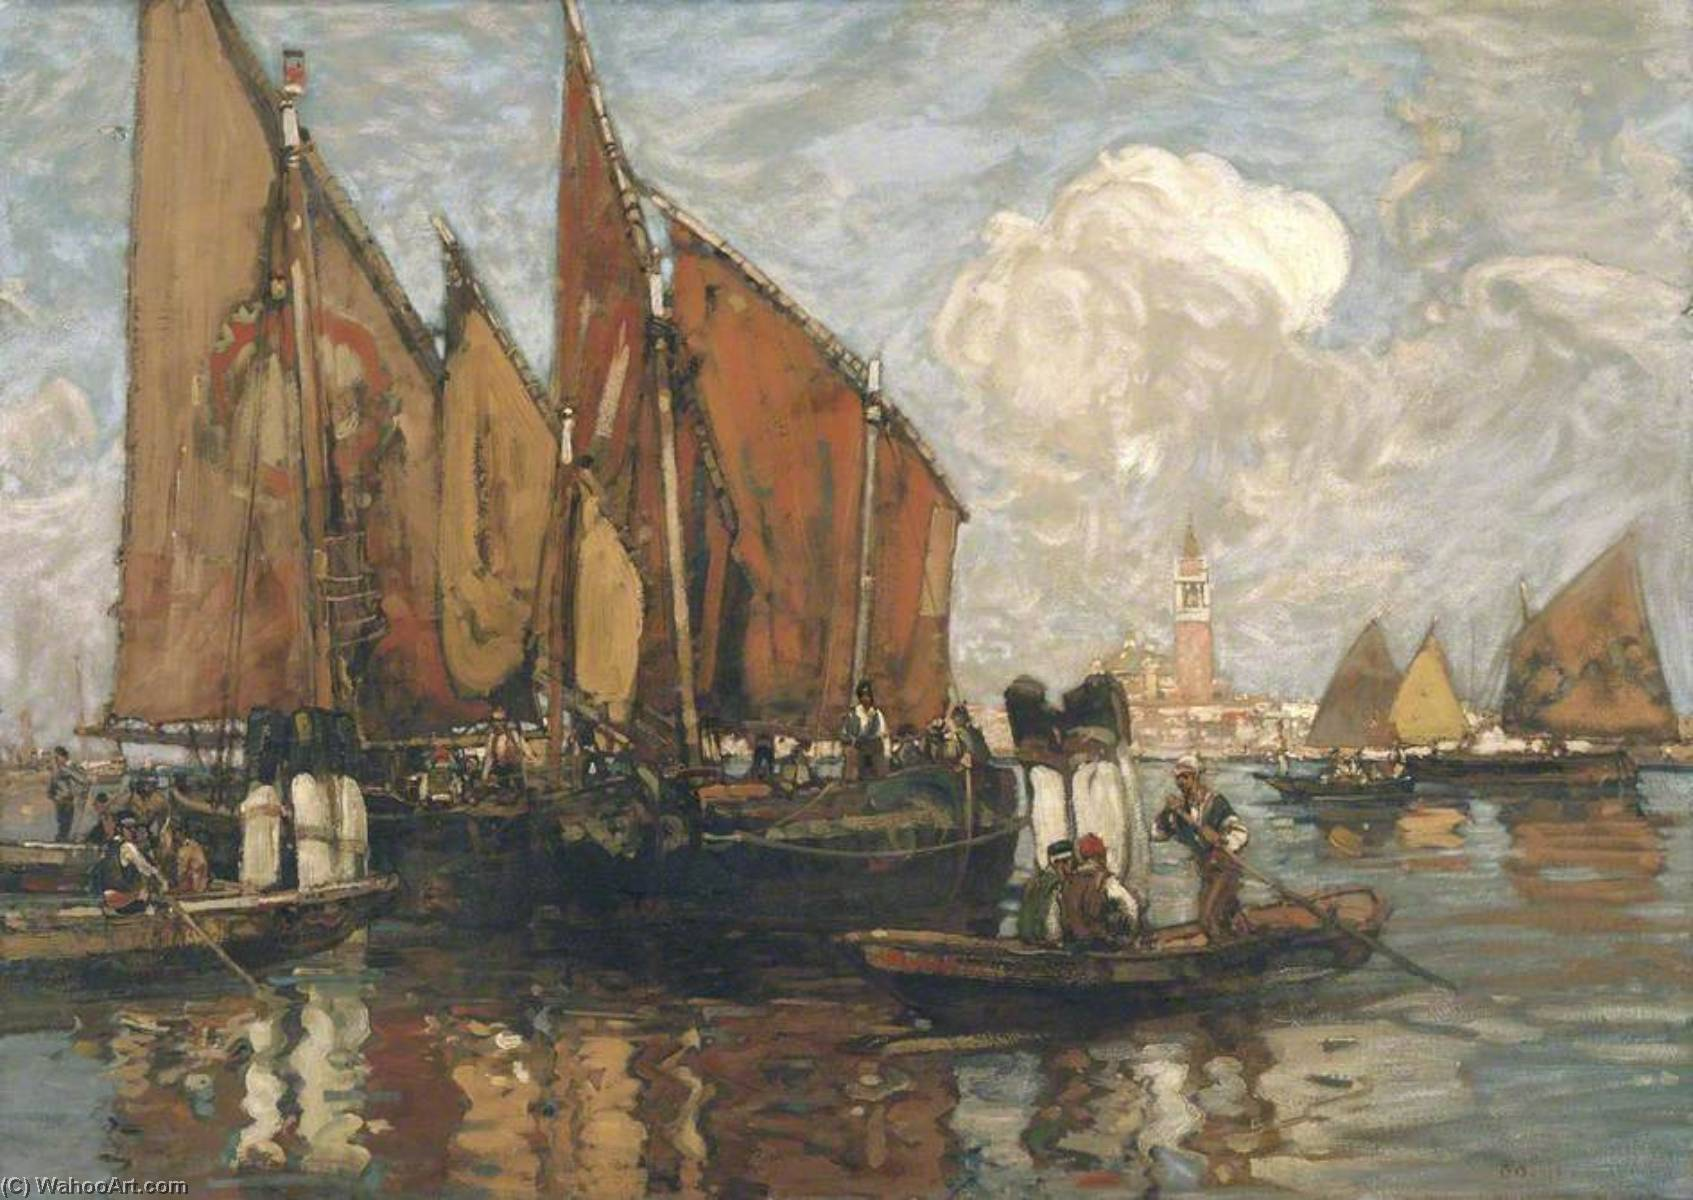 venice st Mark`s de l Lagon, 1900 de Frank William Brangwyn (1867-1956, Belgium) | Reproduction Peinture | ArtsDot.com